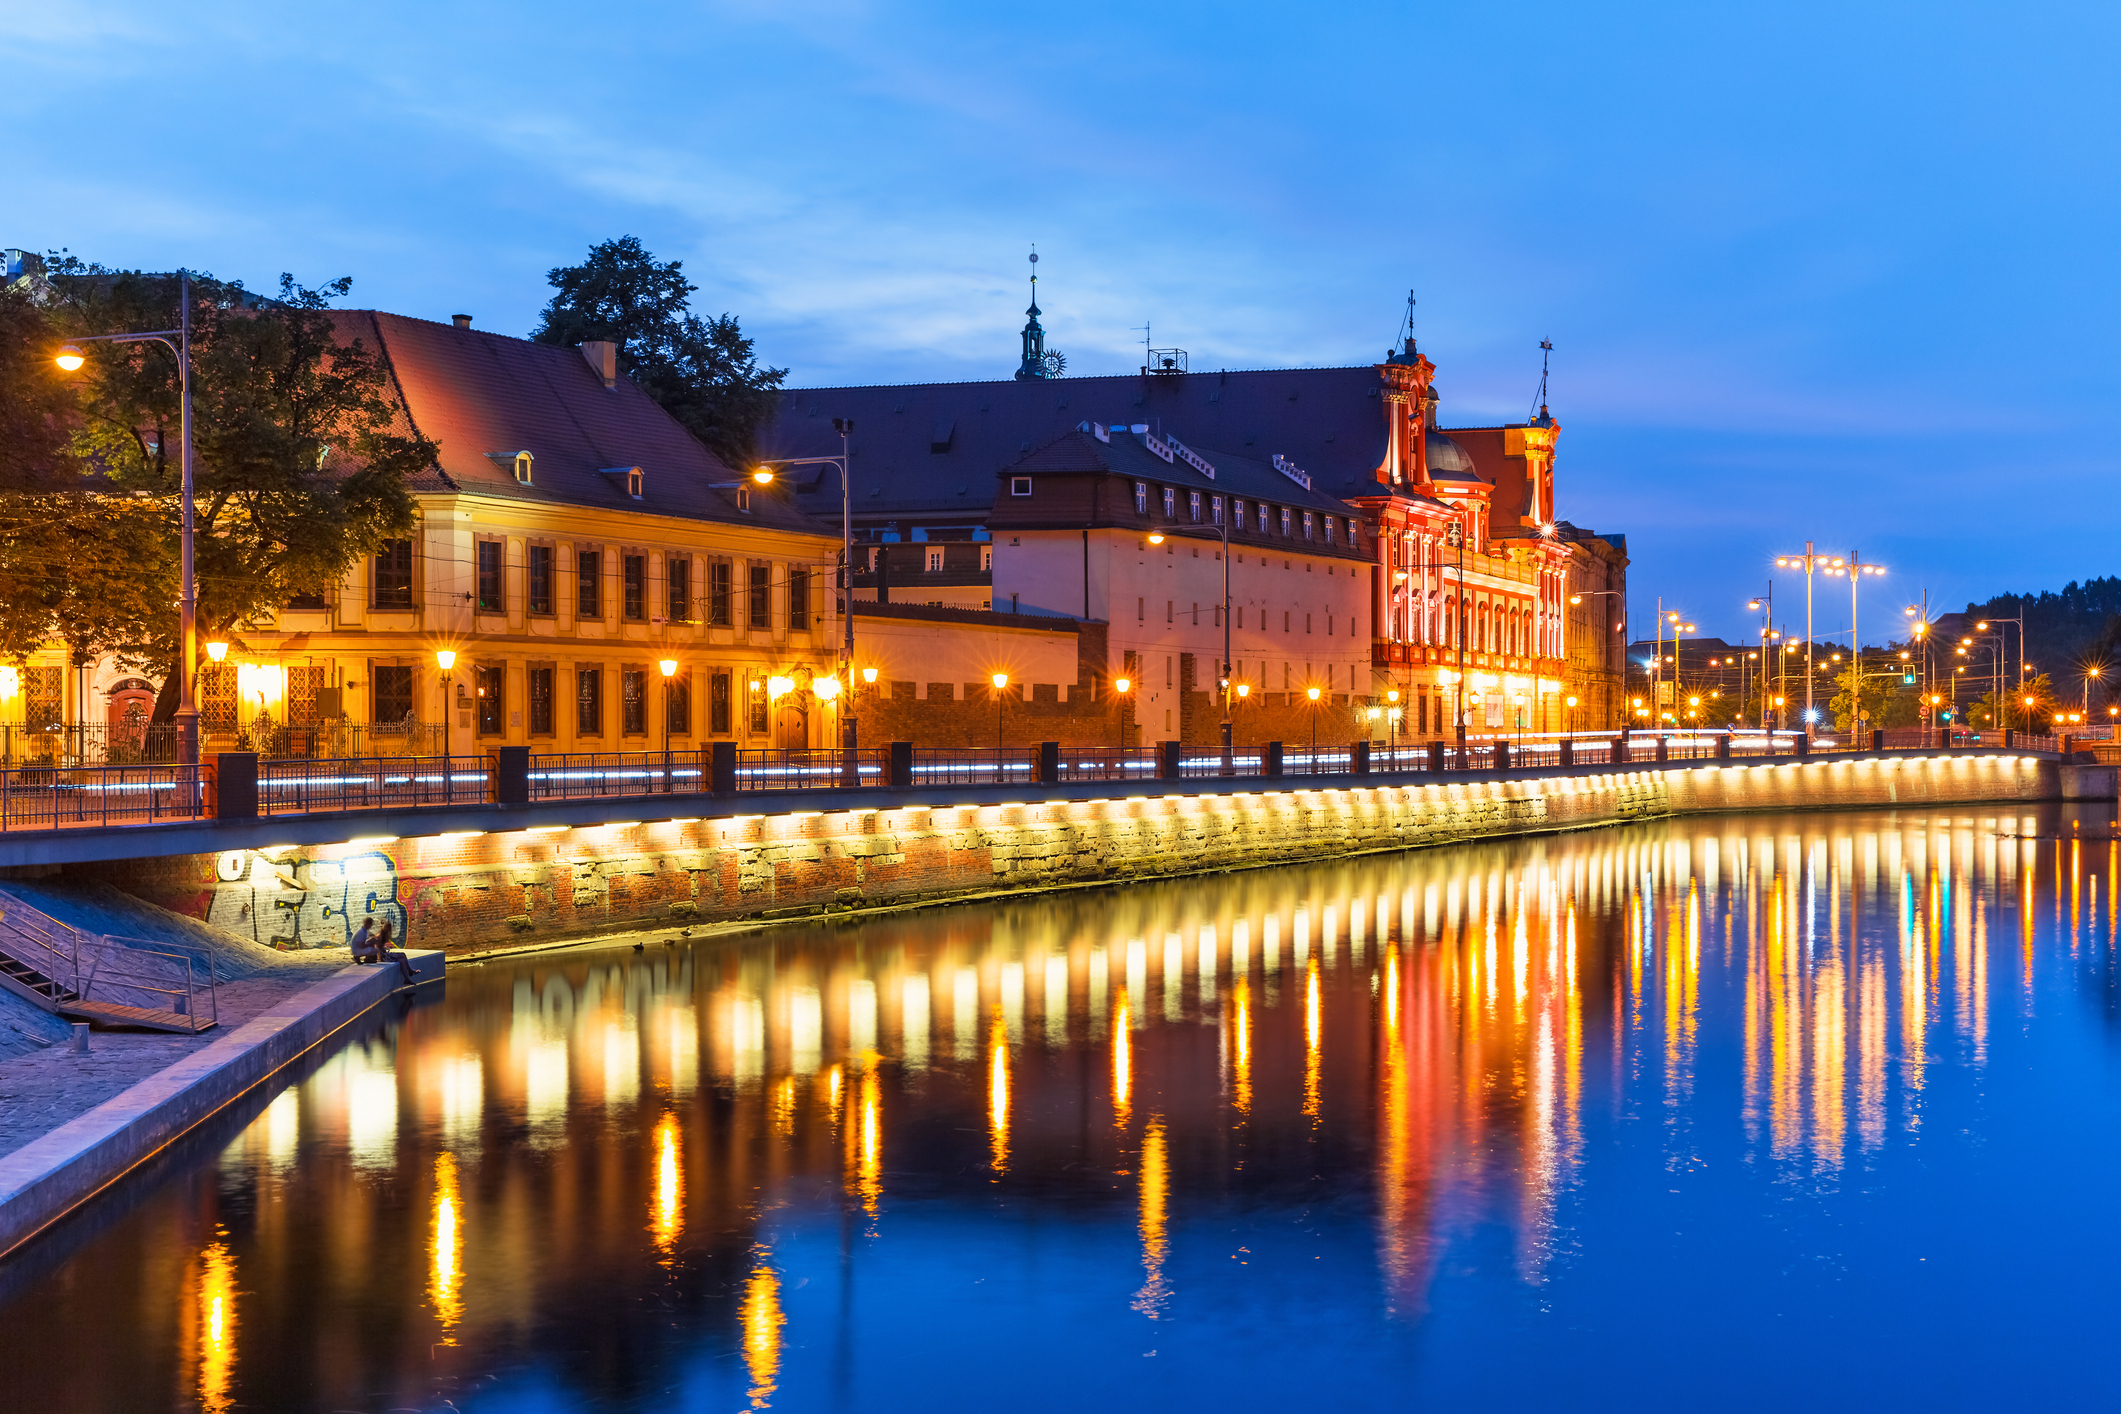 Old Town illuminated pier, Wroclaw, Poland (Getty Images)